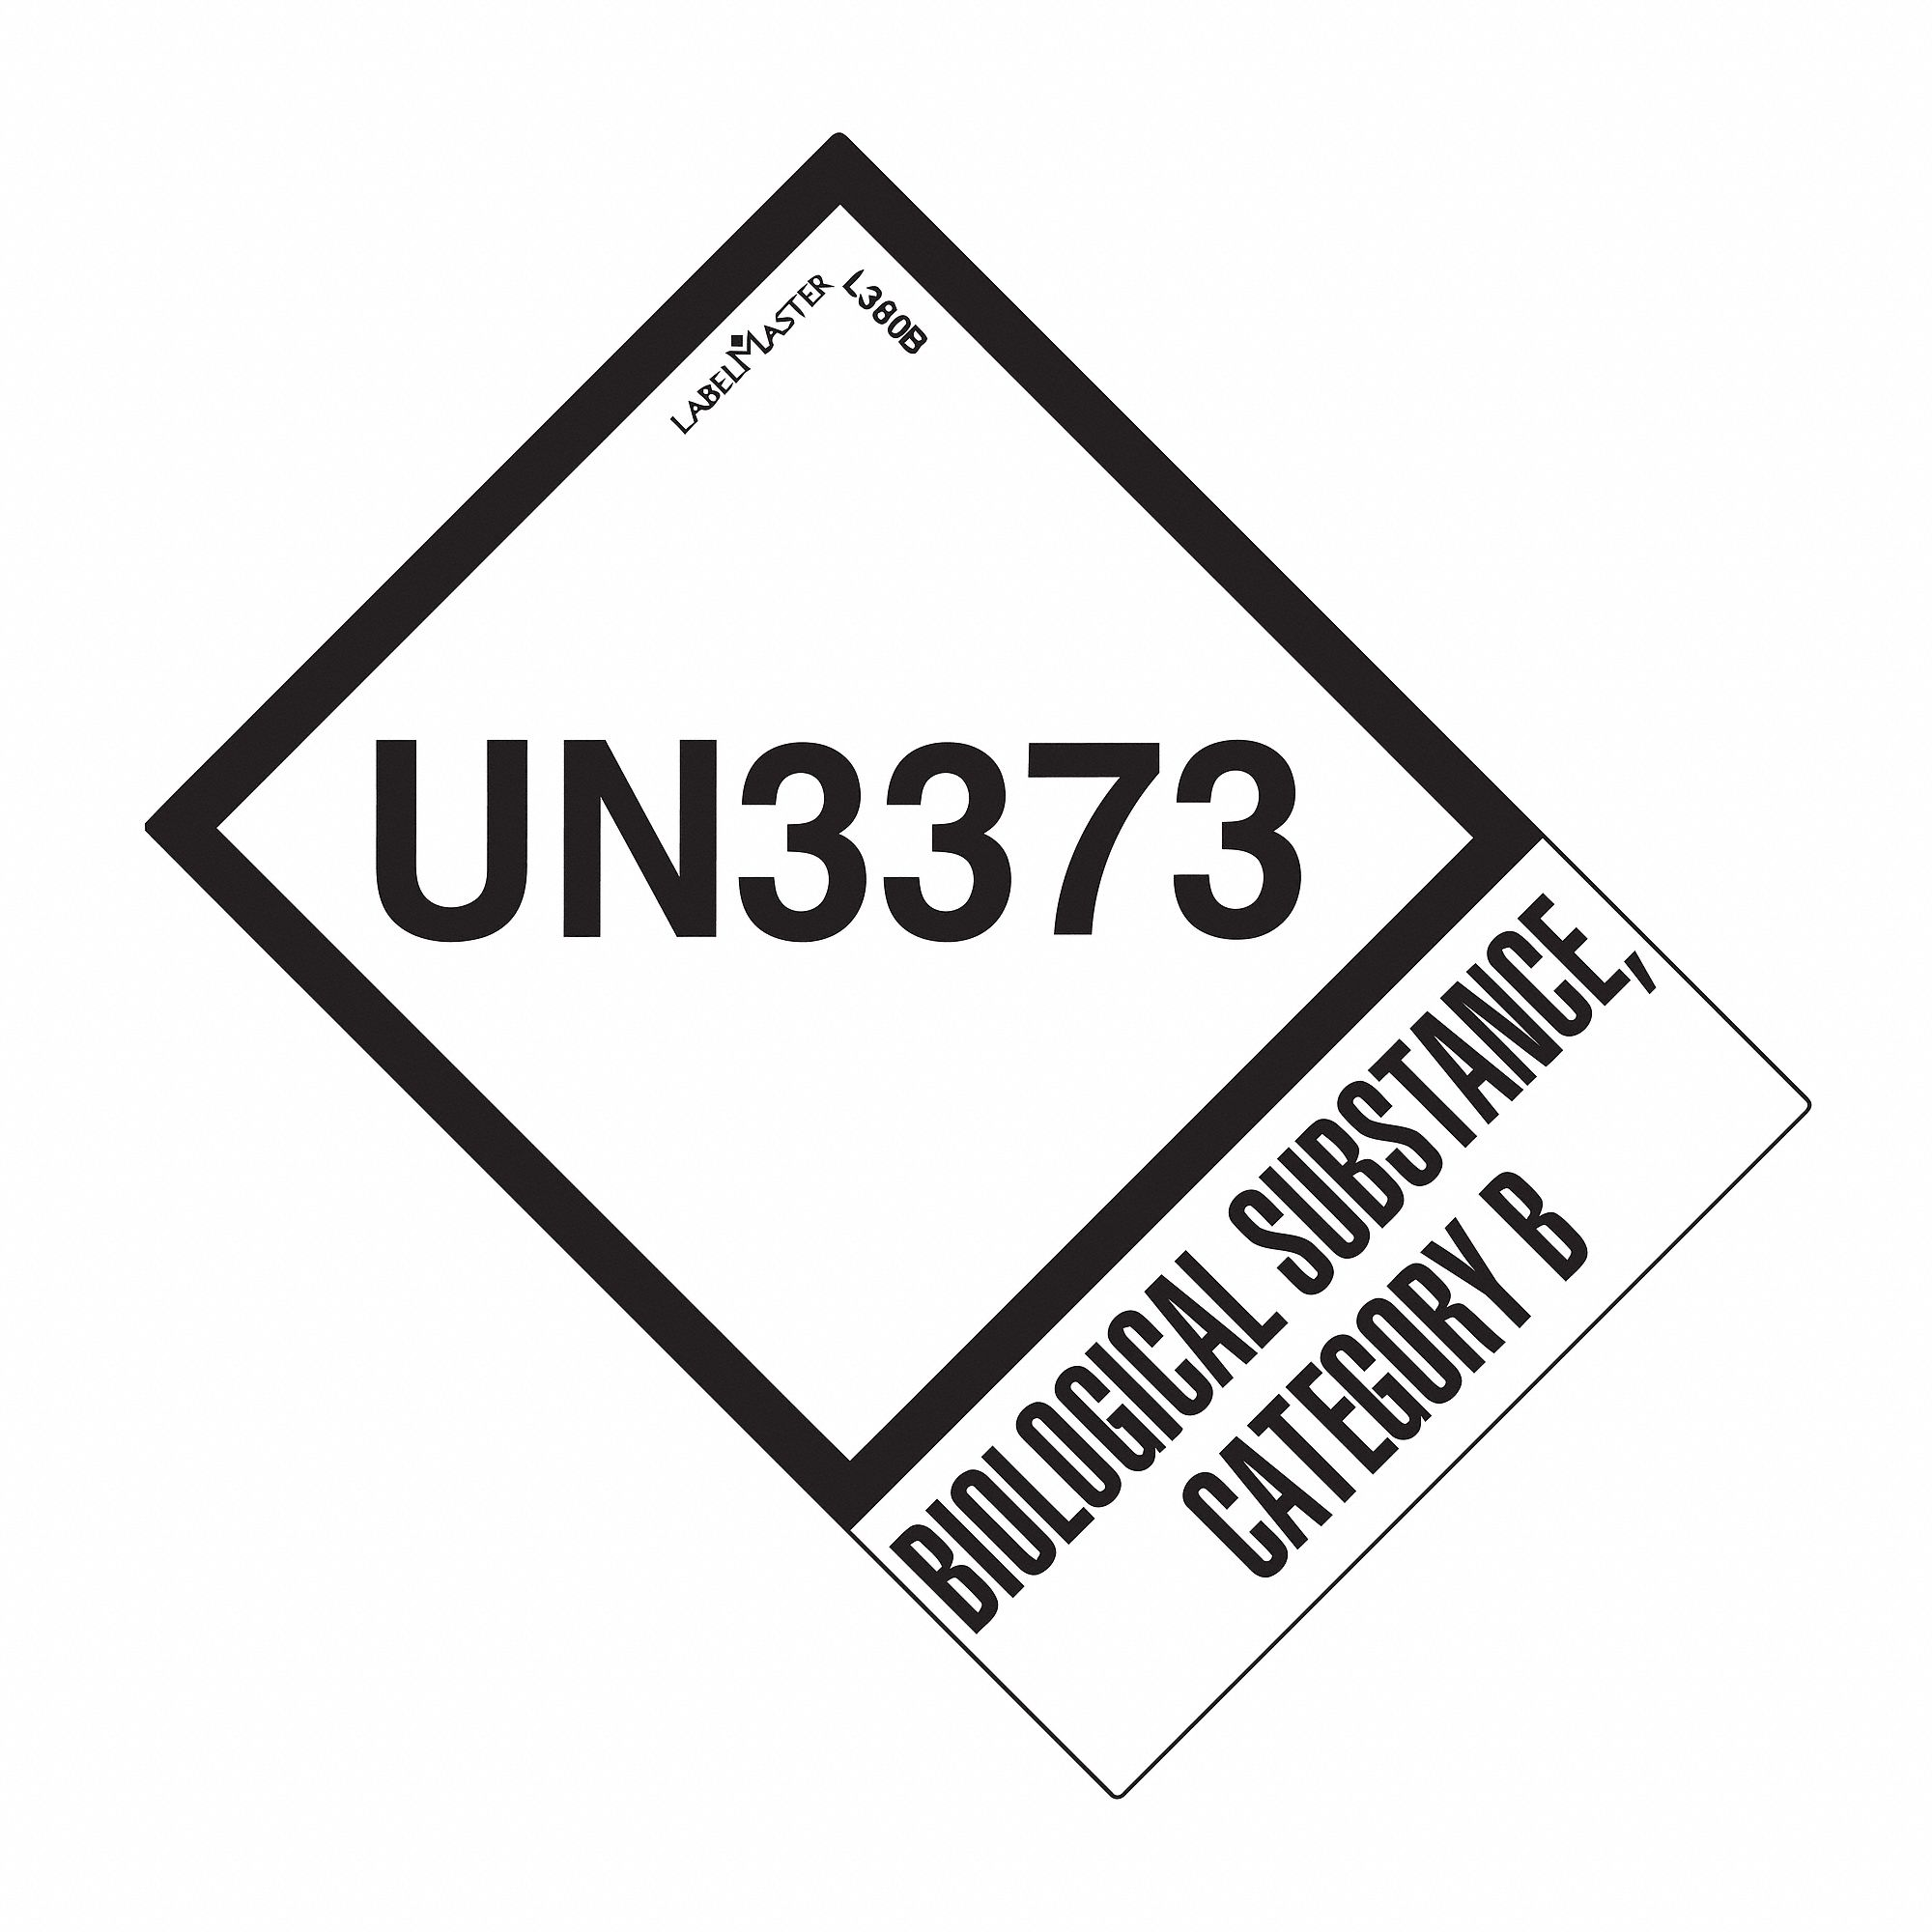 LABELMASTER UN3373 Biological Substance Category B Class